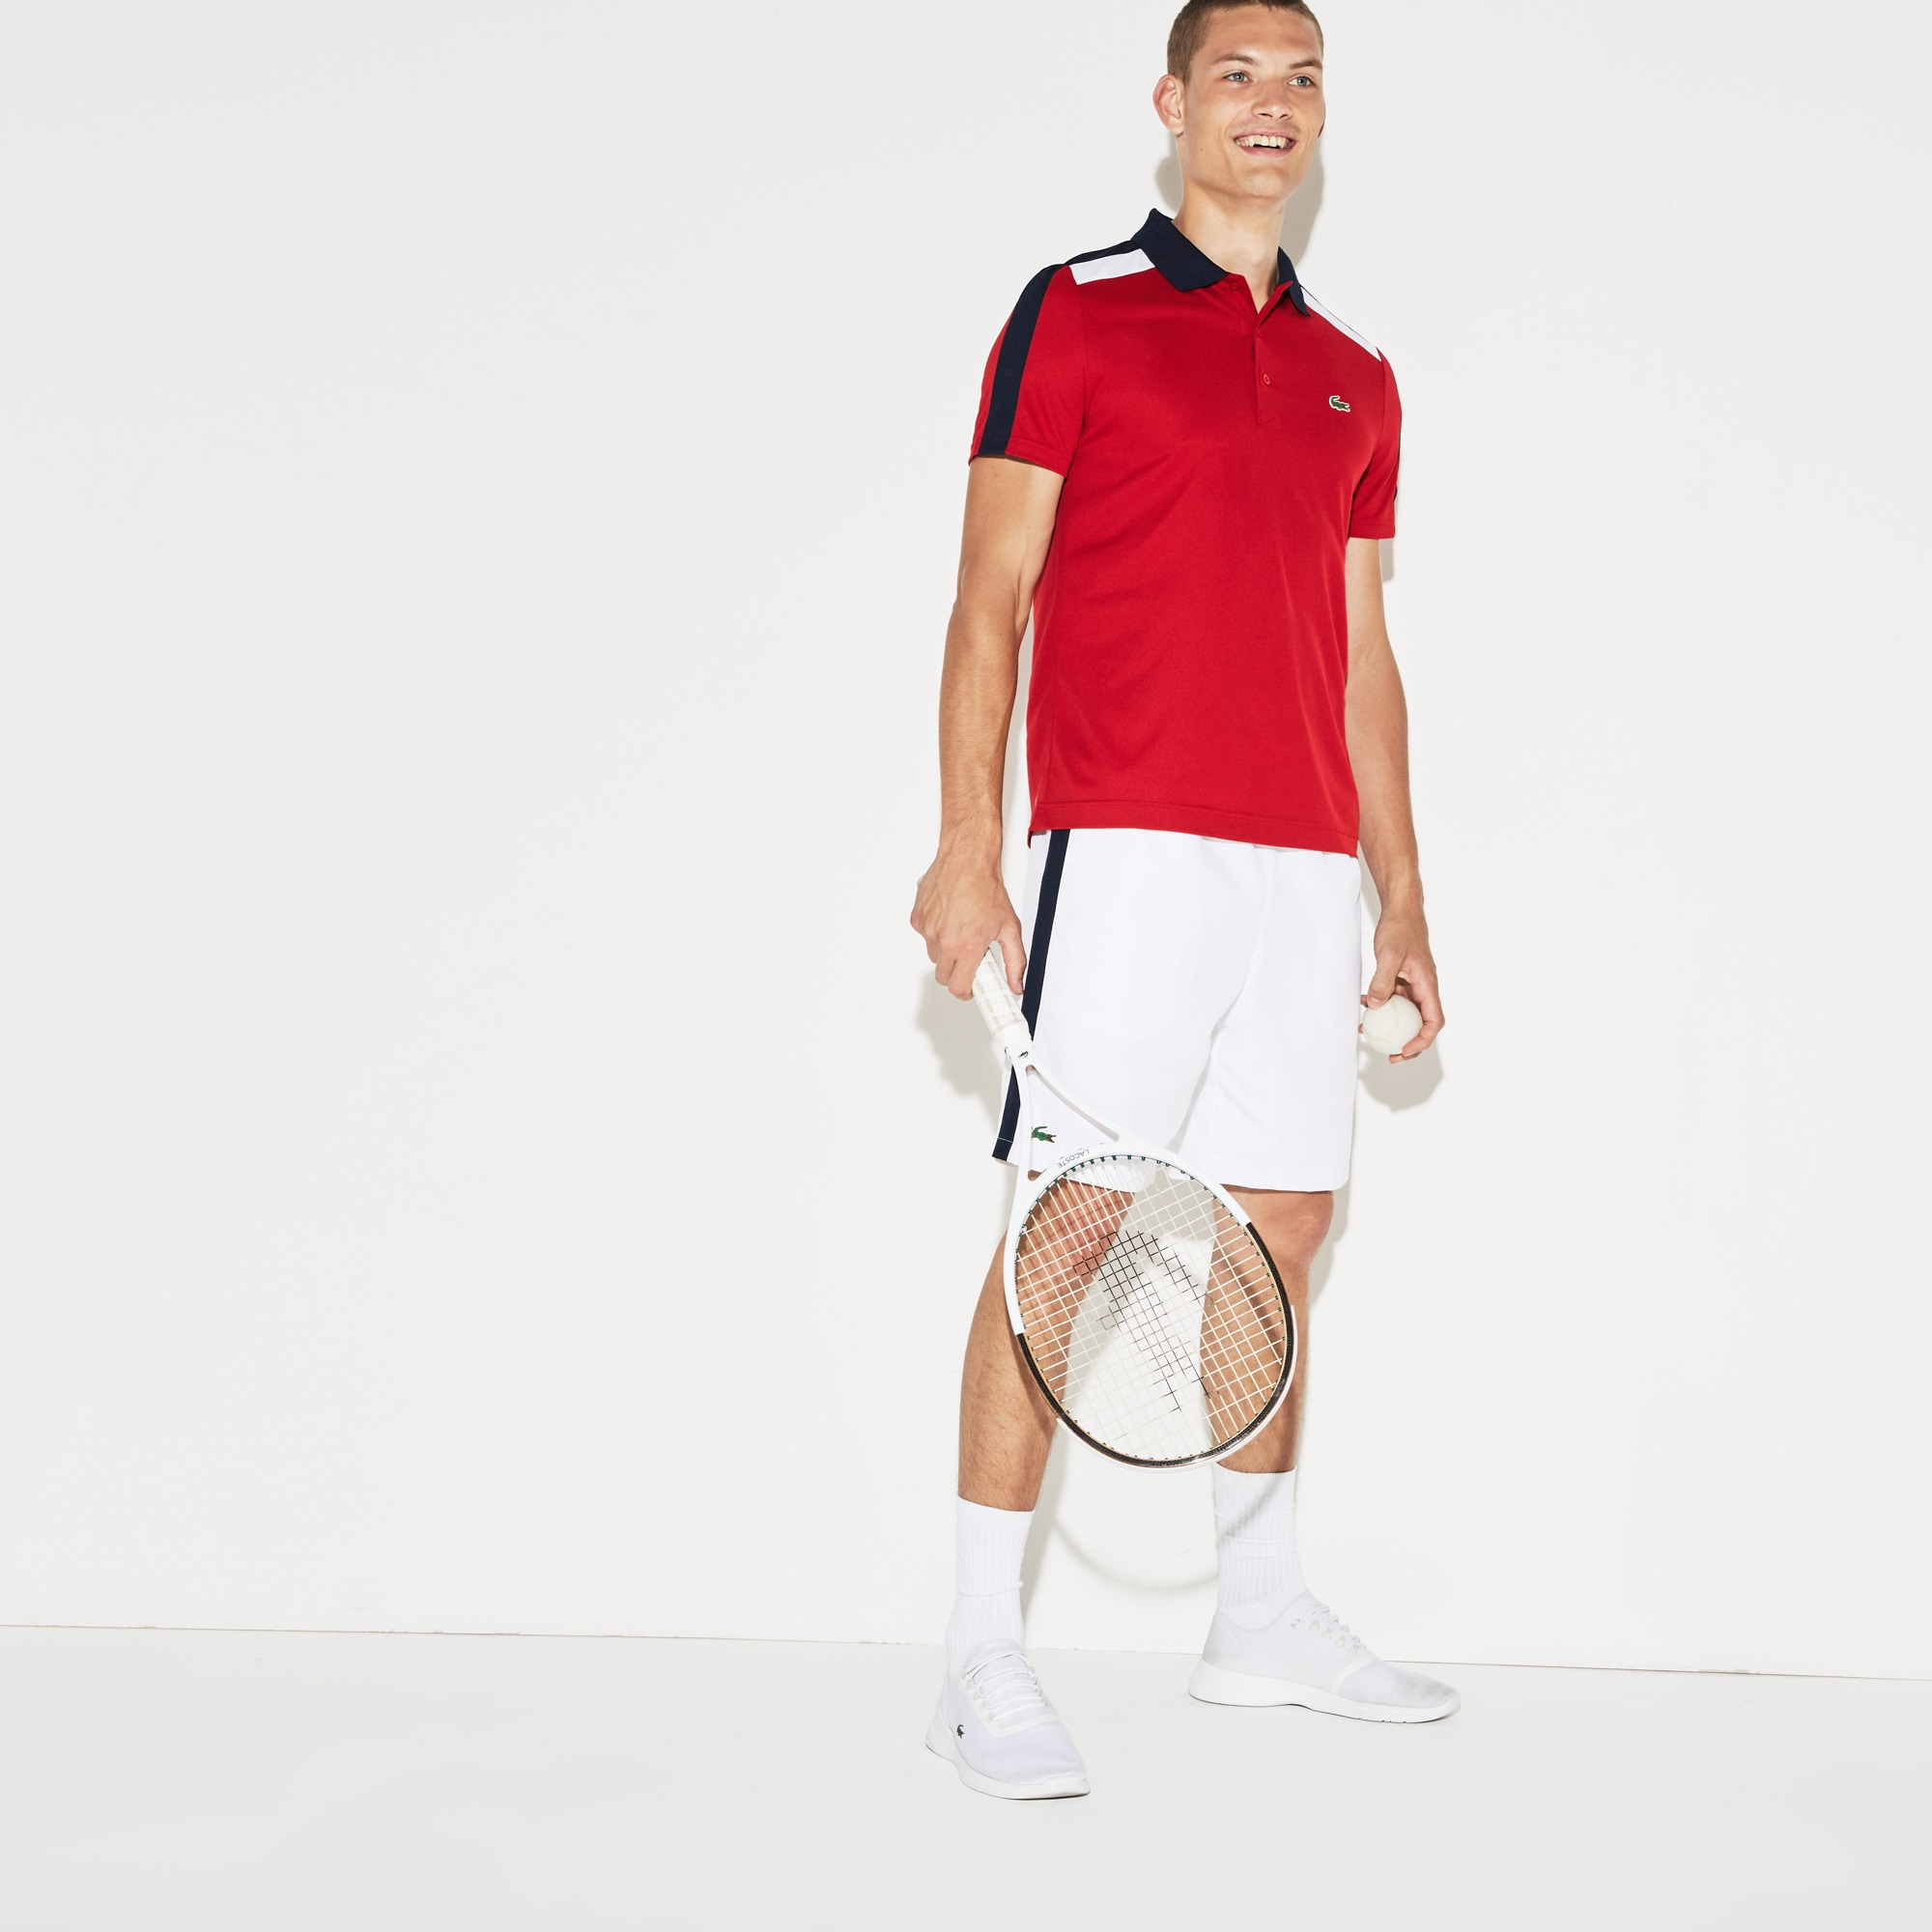 7f87fa6e Tennis Collection | Men's Sport | LACOSTE SPORT